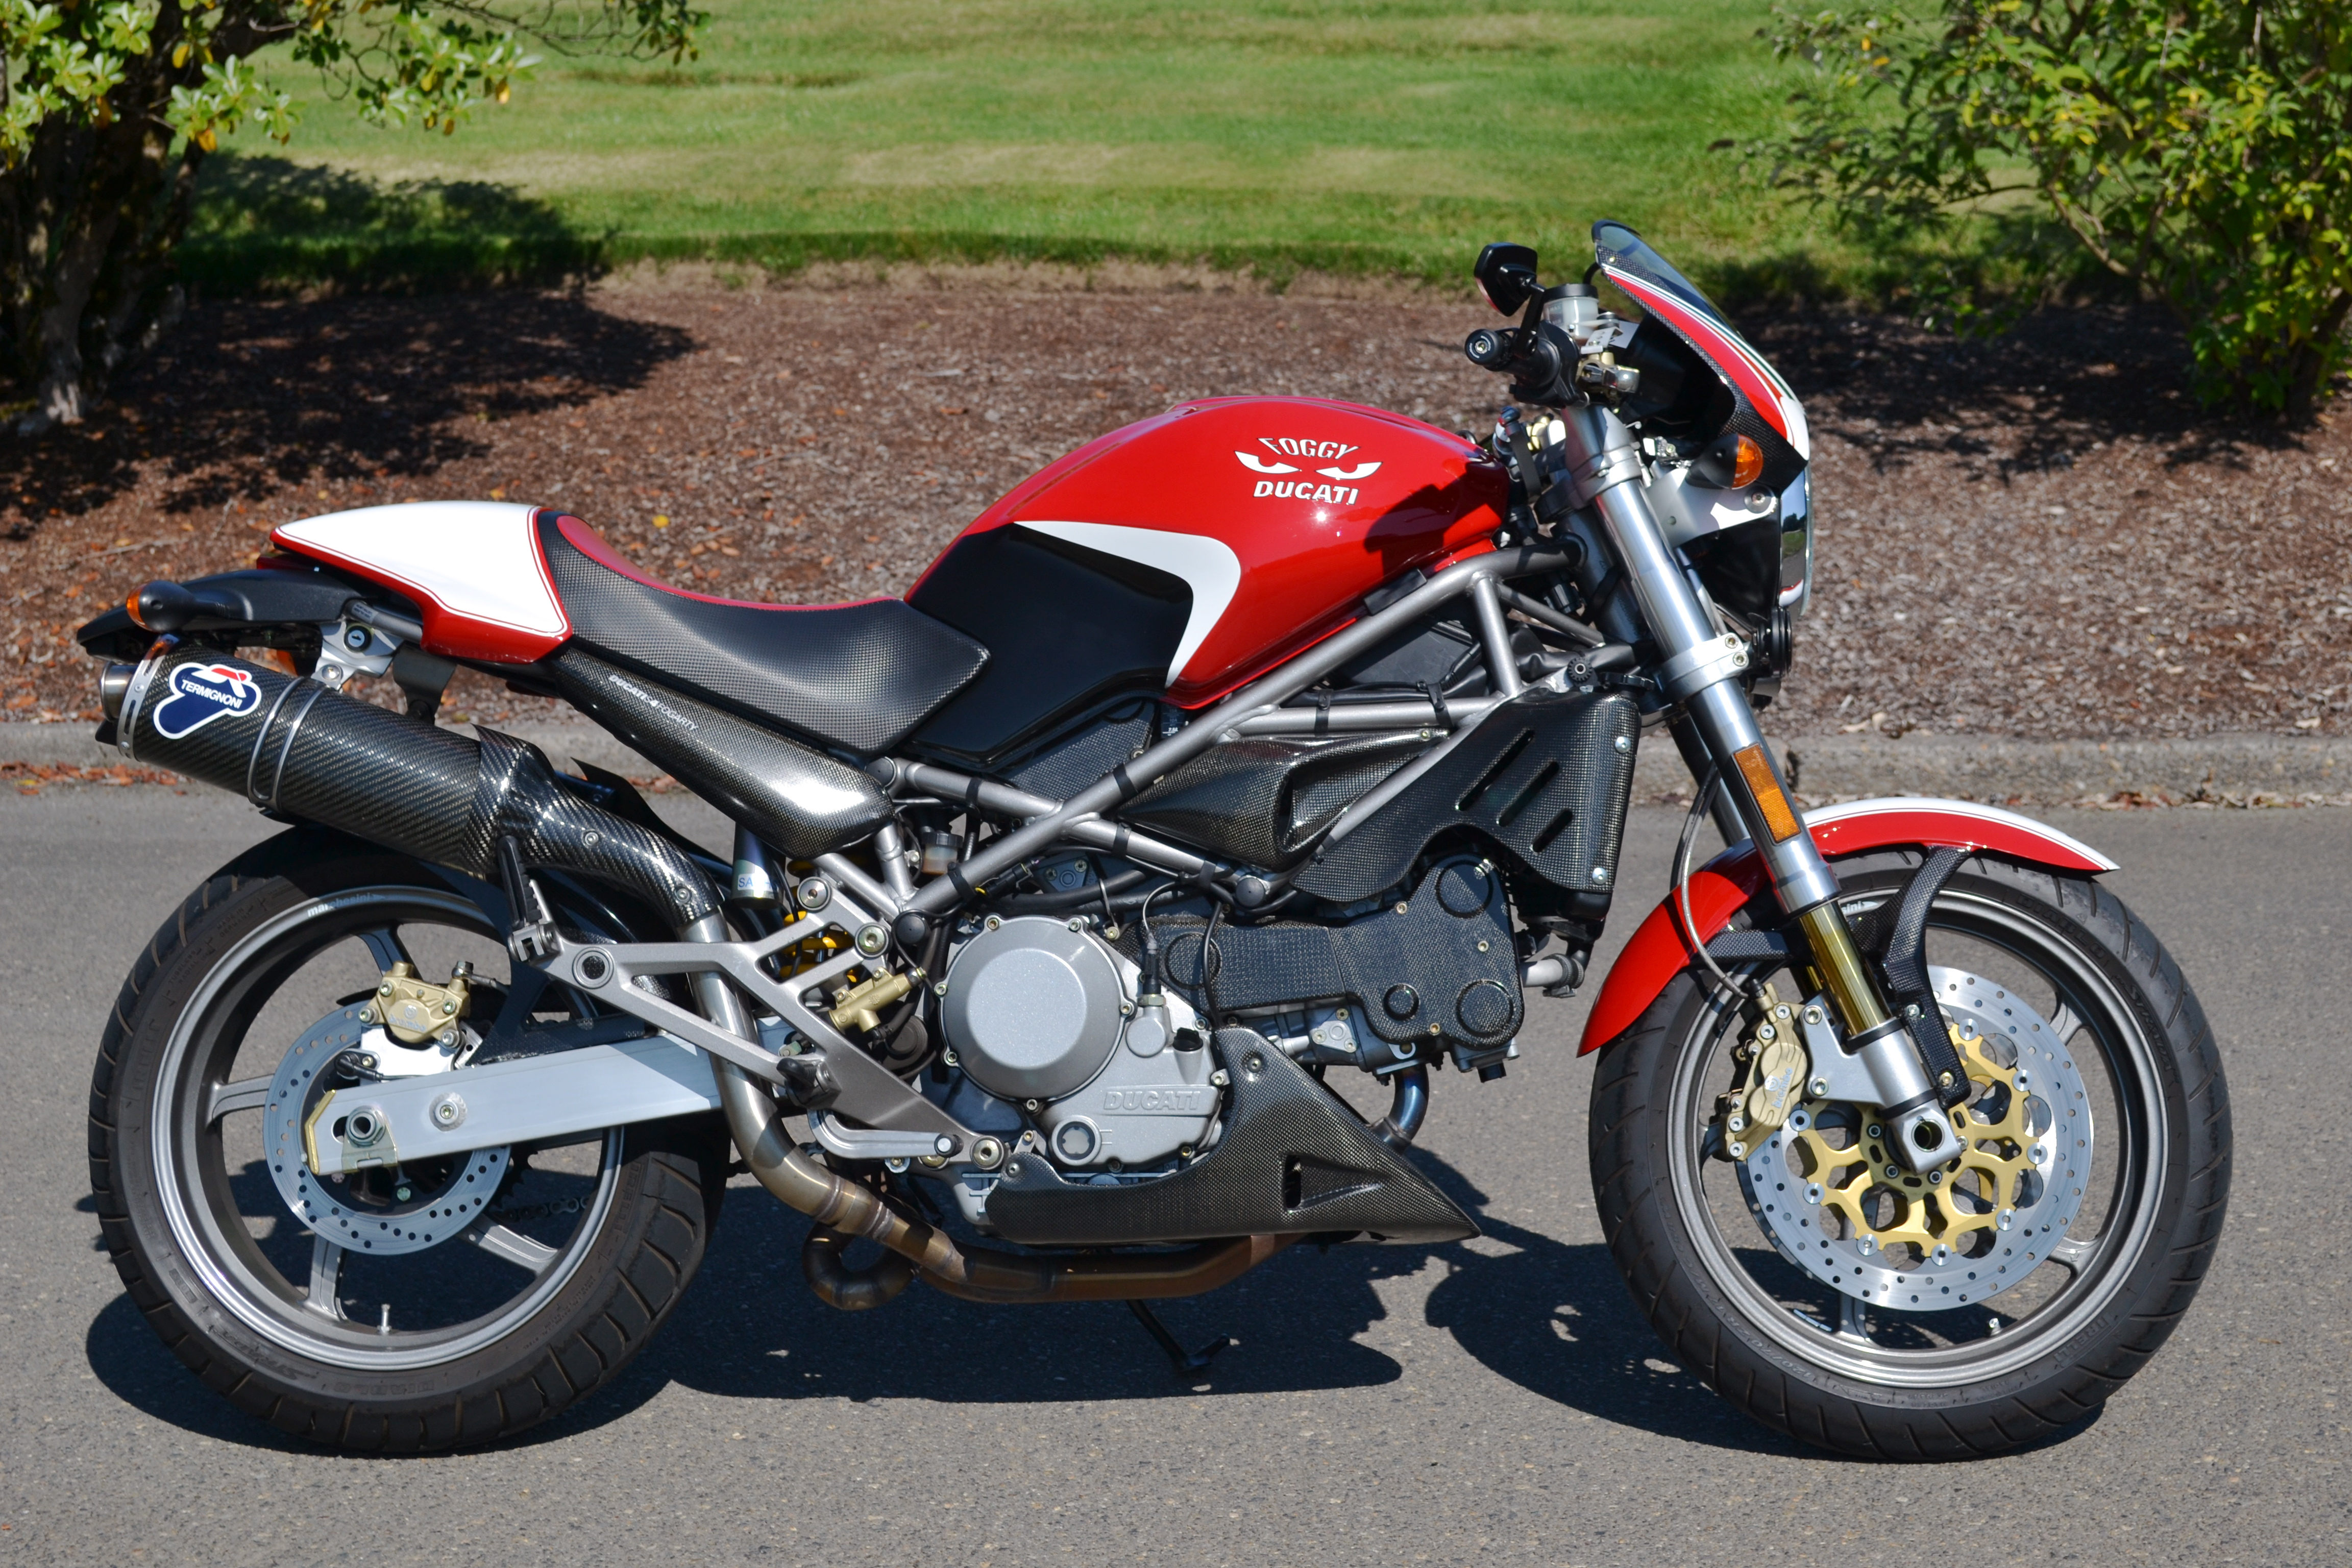 Ducati Monster 620 2005 images #79108